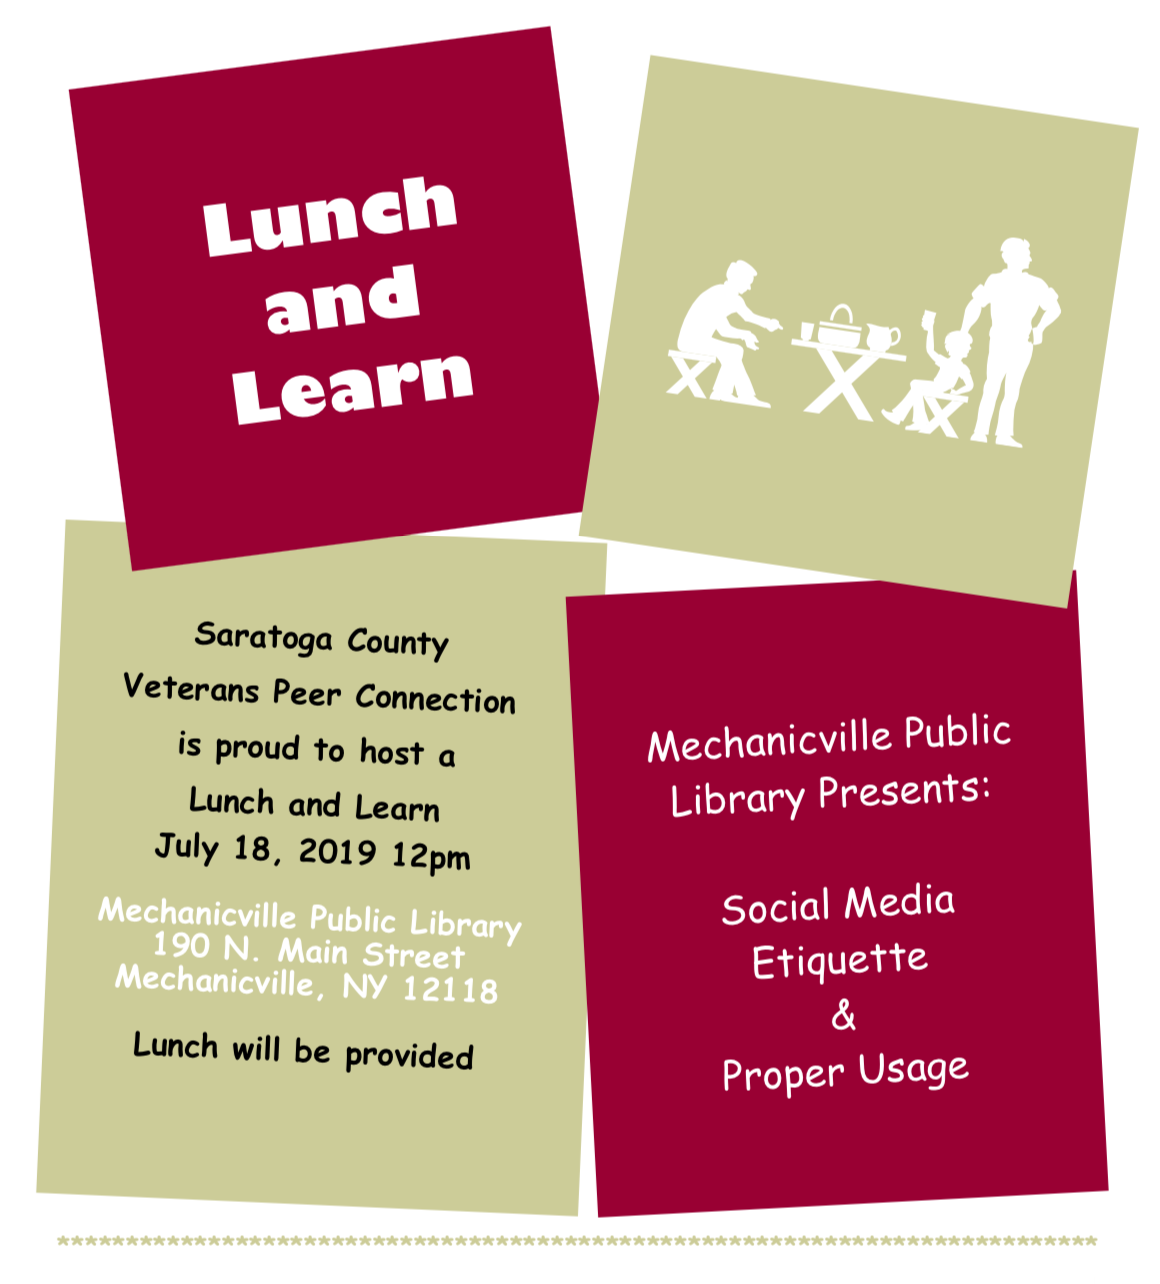 Lunch and Learn - Mechanicville Public Library